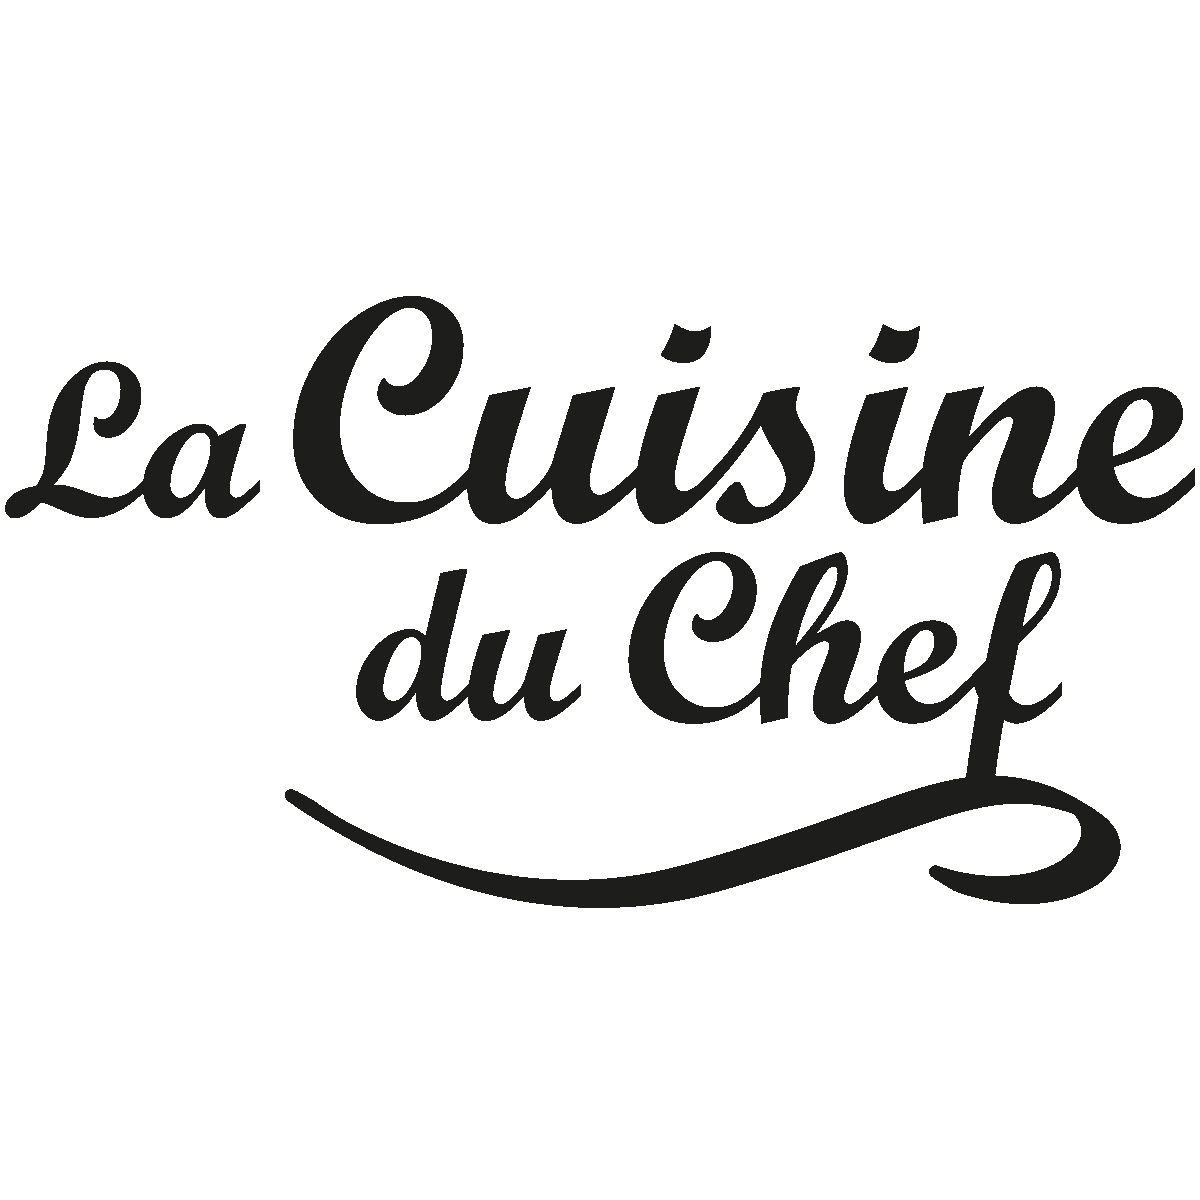 Sticker citation la cuisine du chef stickers citations for Ala cuisine iron chef